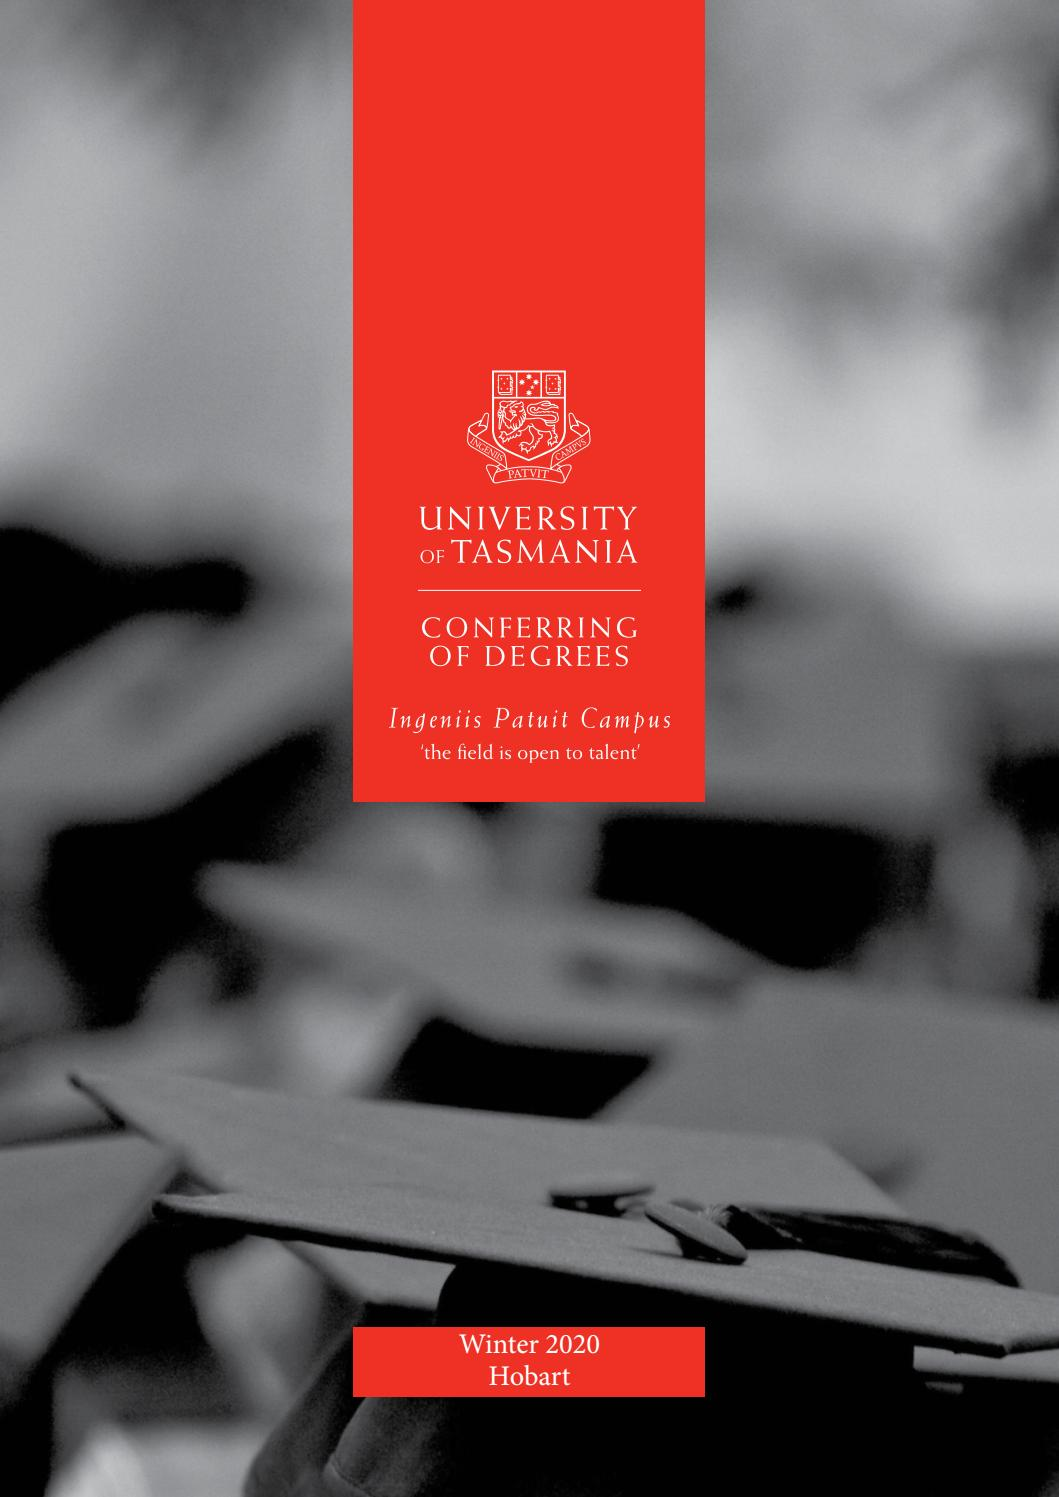 University Of Tasmania Graduation Program Hobart 14 August 2020 By University Of Tasmania Issuu